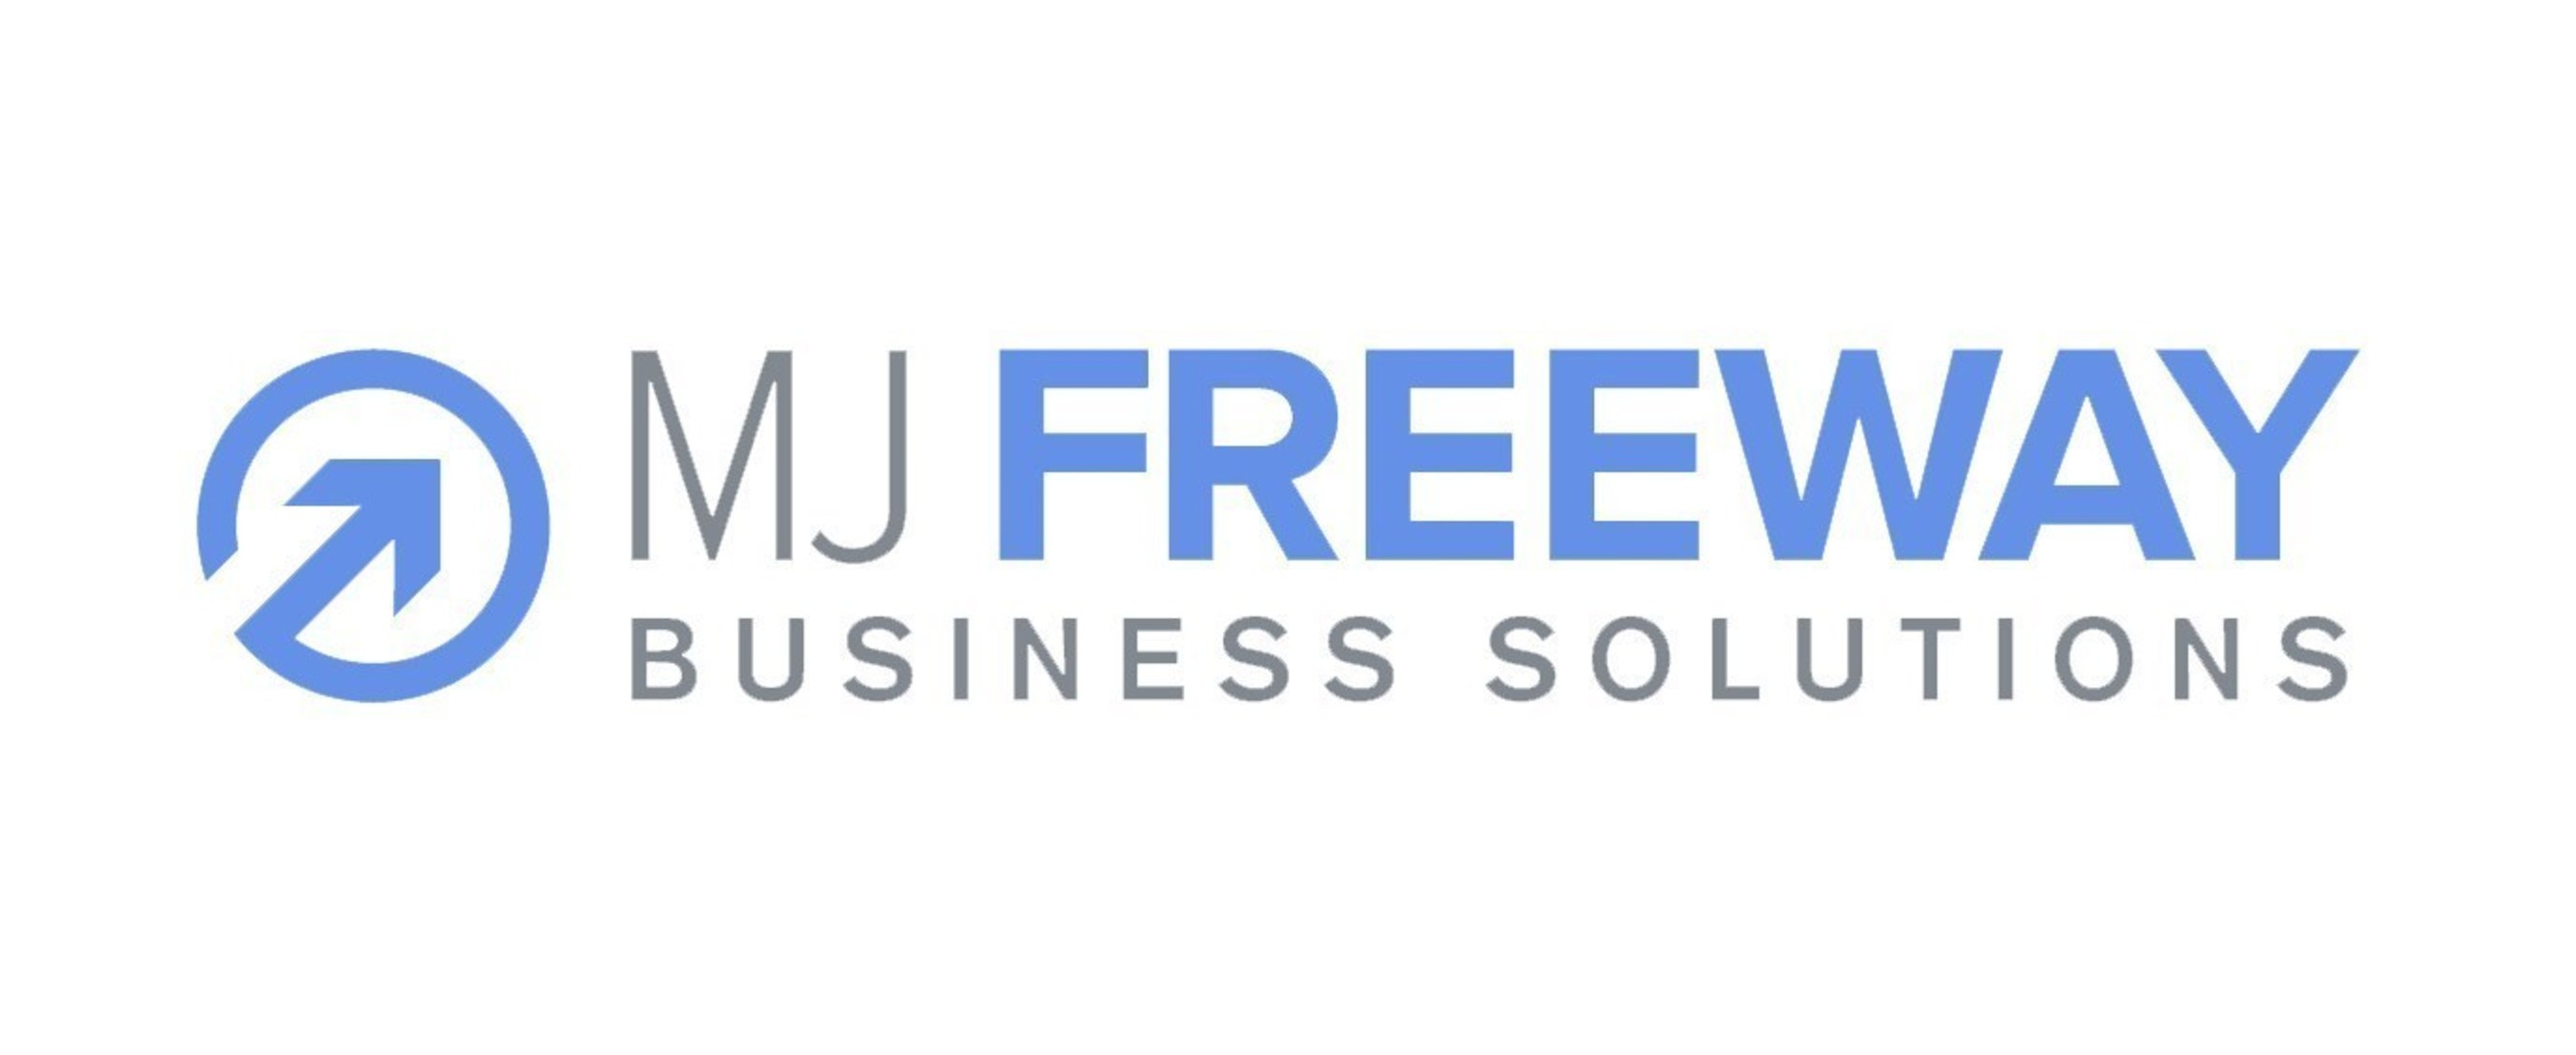 Second Year Running: Denver-based MJ Freeway Joins the Ranks of Inc's Fastest Growing Companies in the United States